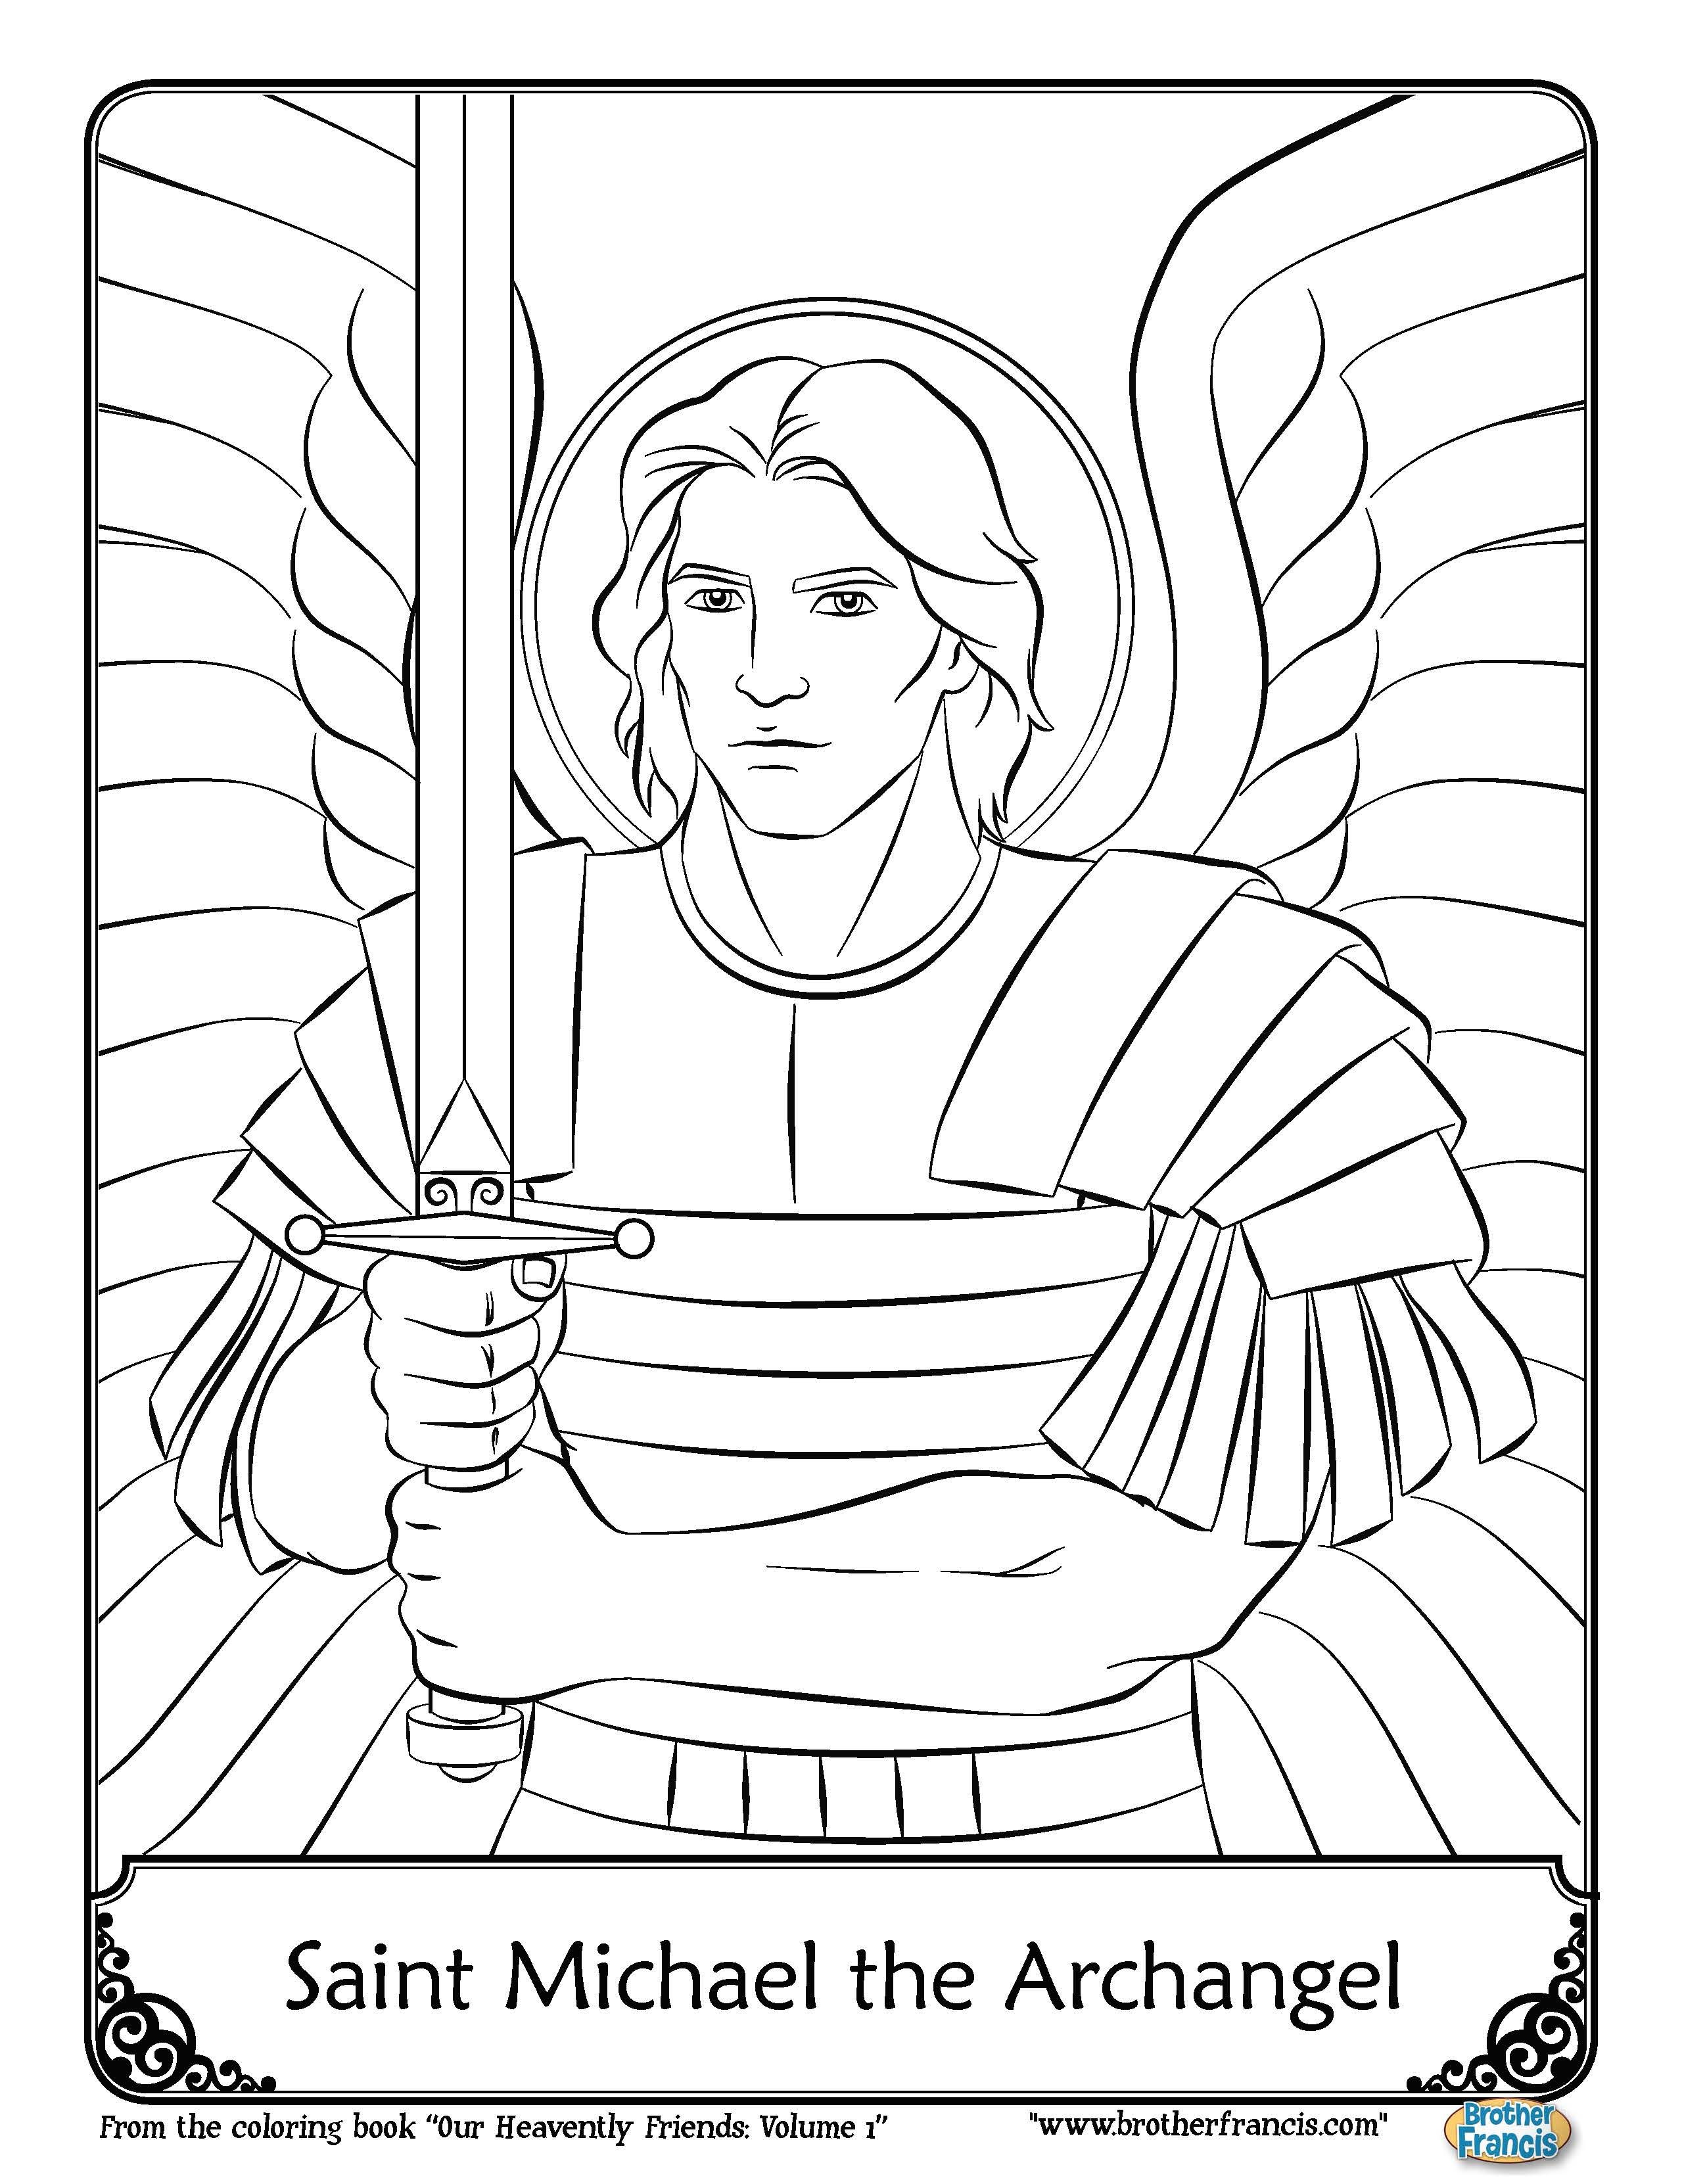 st francis xavier coloring page saint francis coloring page at getdrawings free download coloring page st xavier francis